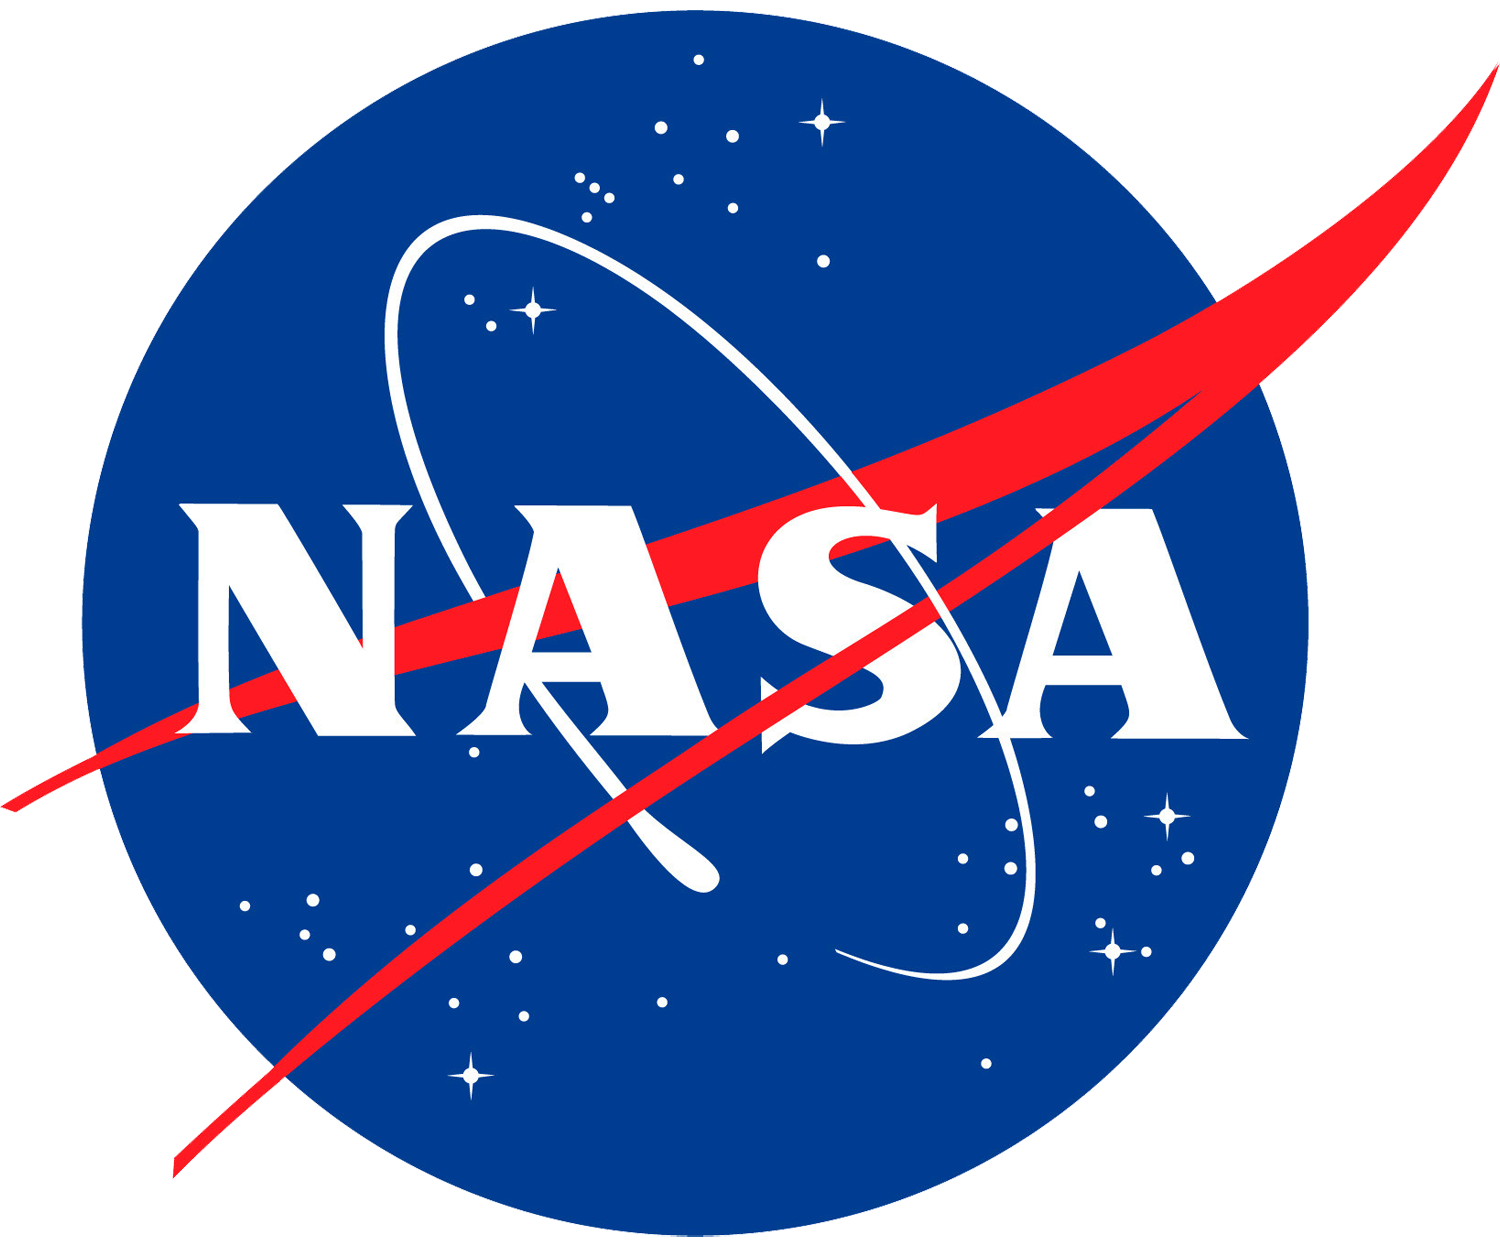 nasa logo png transparent background famous logos